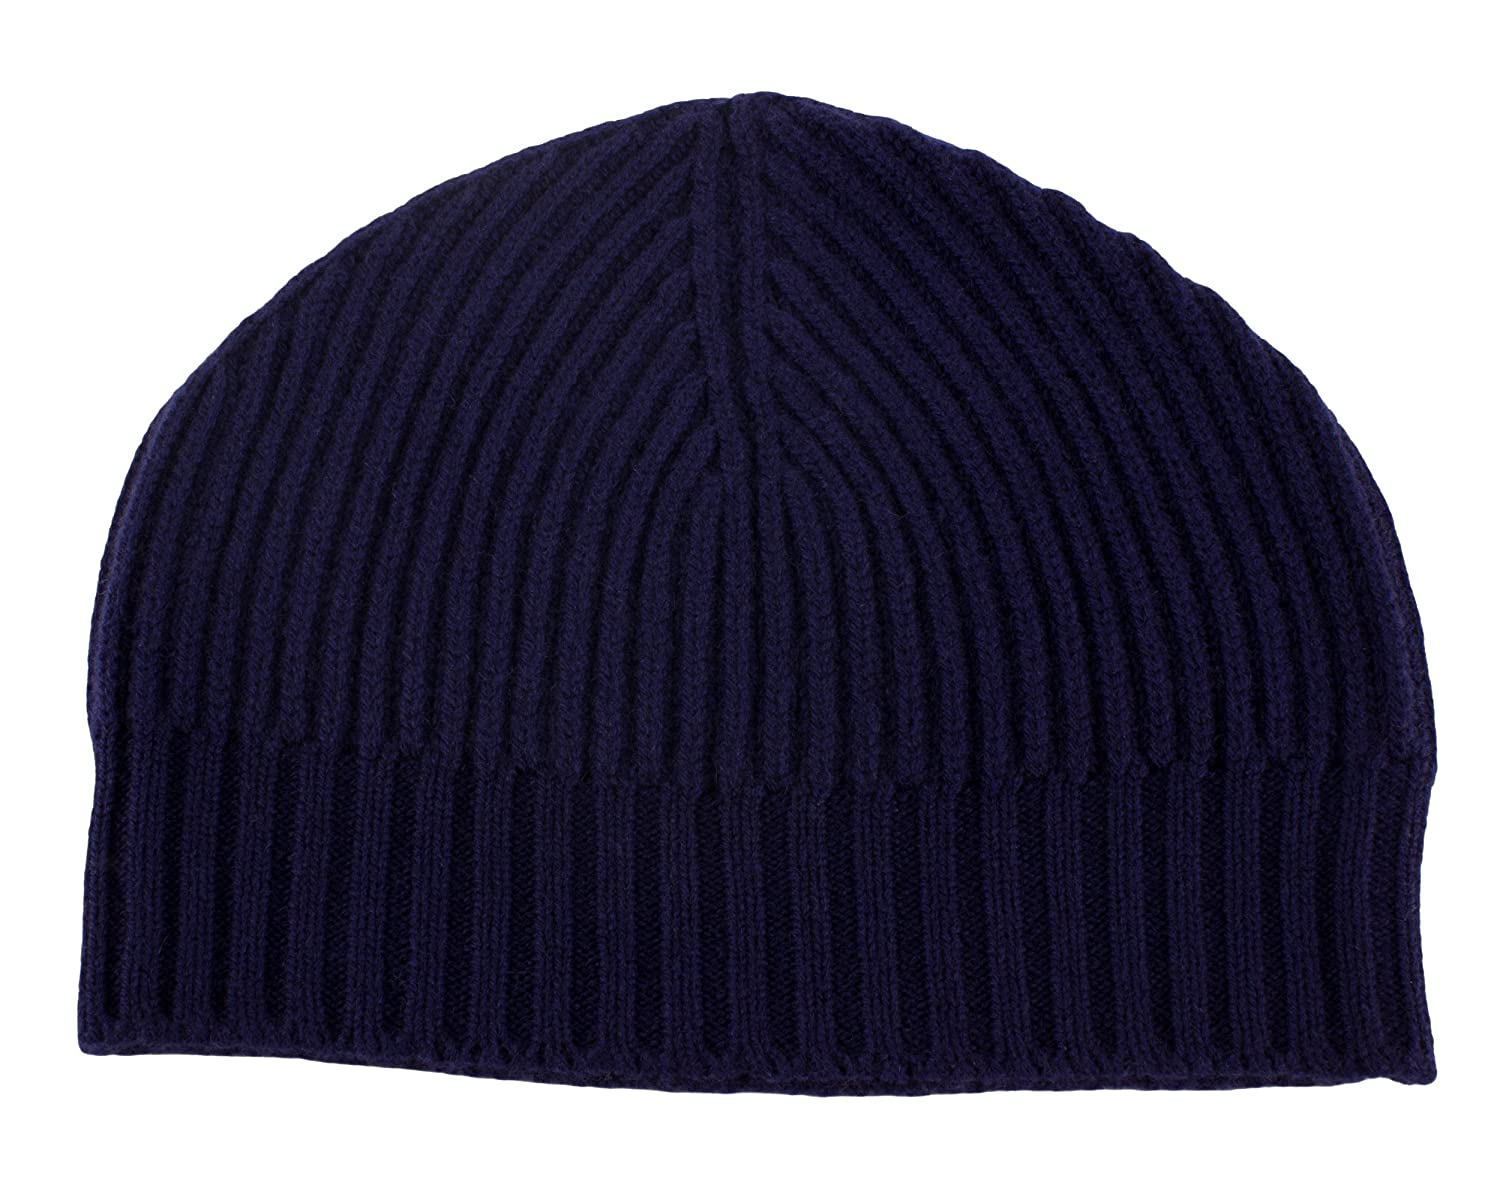 ec70debfb37 Love Cashmere Mens Ribbed 100% Cashmere Beanie Hat - Navy Blue - Made in  Scotland RRP  180 at Amazon Men s Clothing store